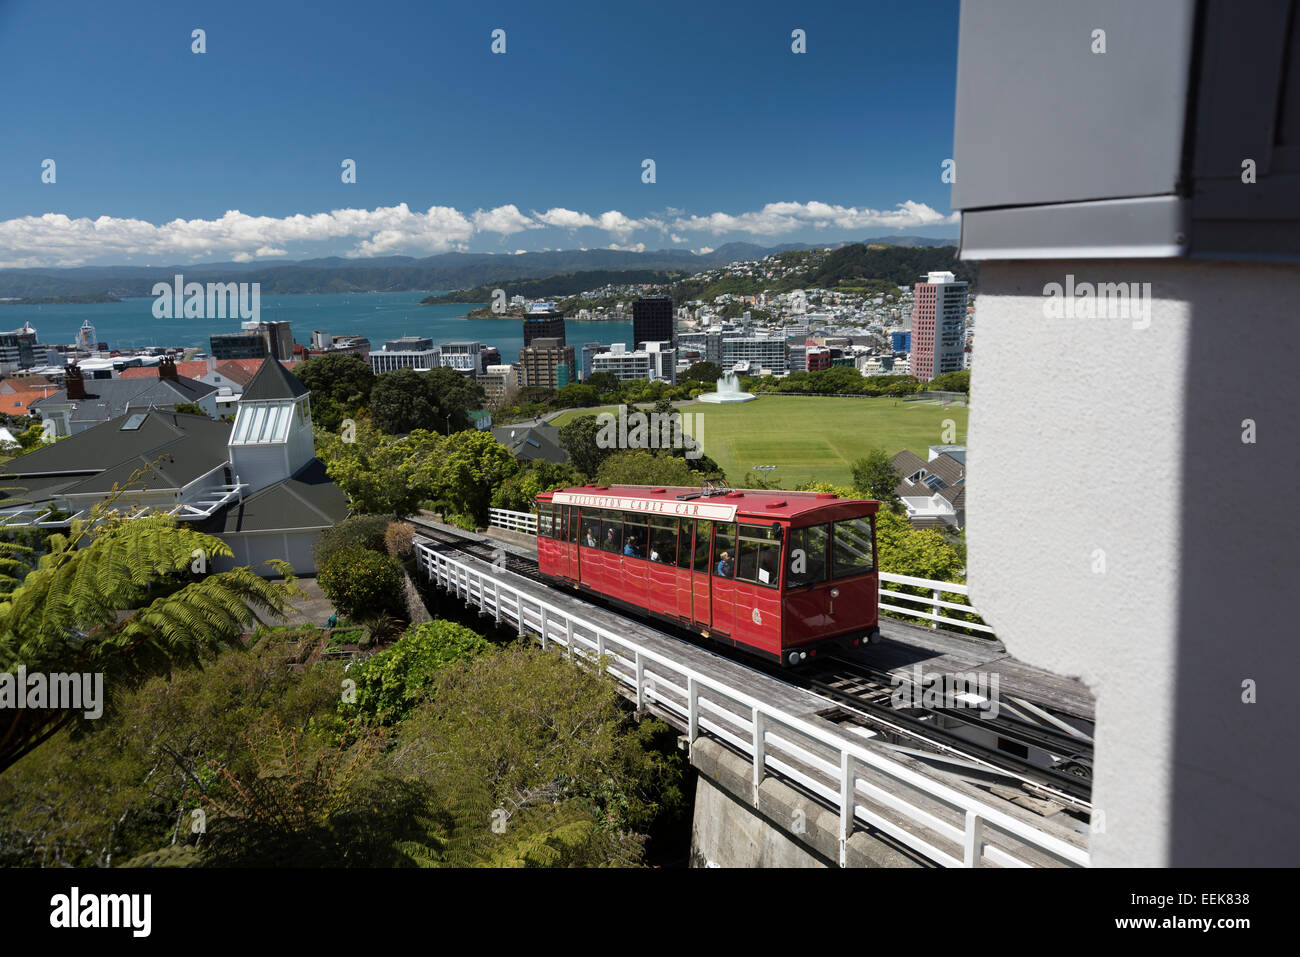 Wellington Cable Car entering the upper station,  kurz vor der Einfahrt in die Bergstation, newzealand, - Stock Image